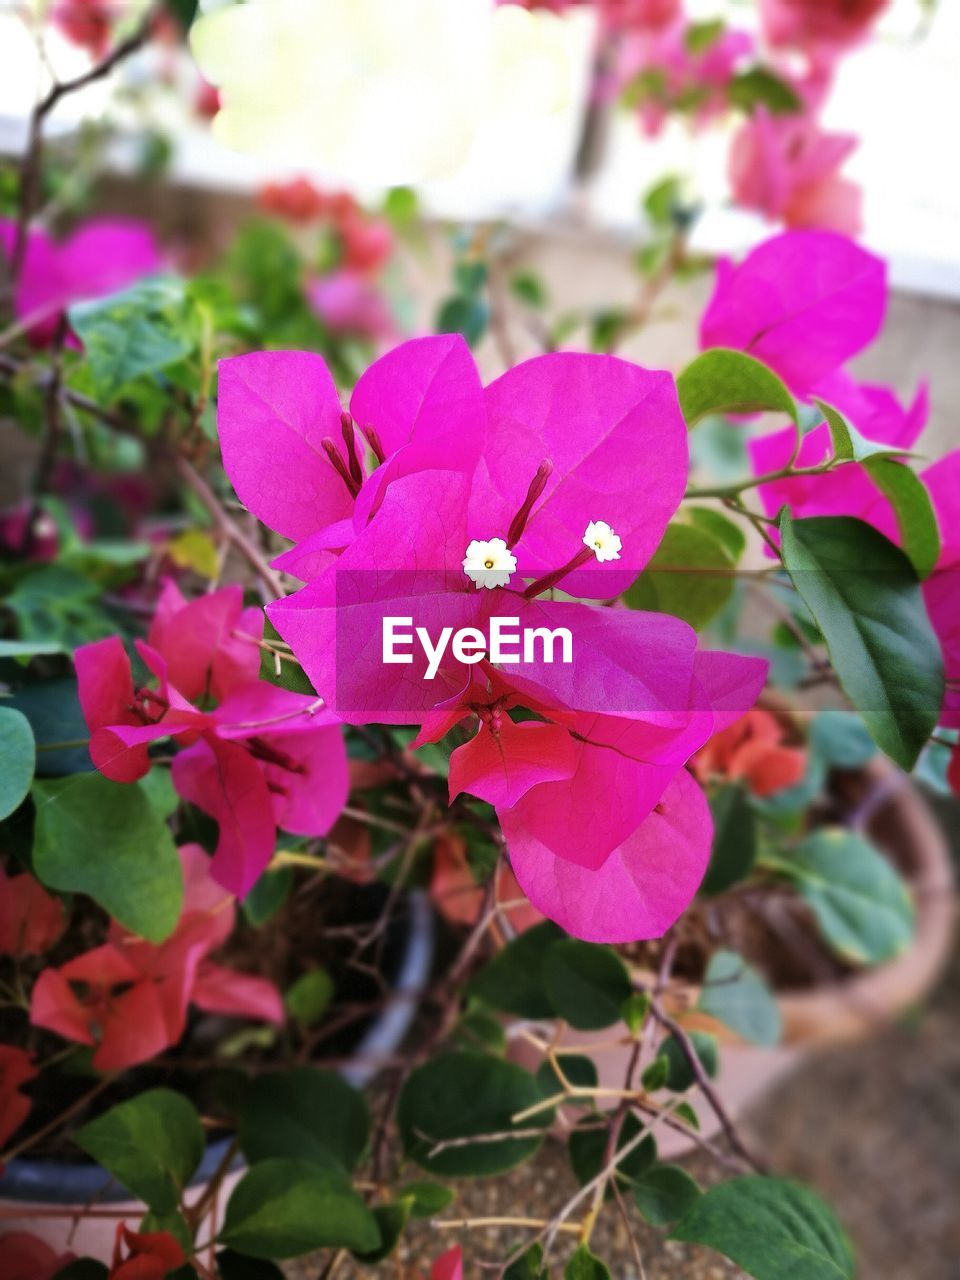 pink color, petal, growth, beauty in nature, fragility, nature, flower, day, flower head, focus on foreground, no people, plant, freshness, outdoors, leaf, periwinkle, close-up, blooming